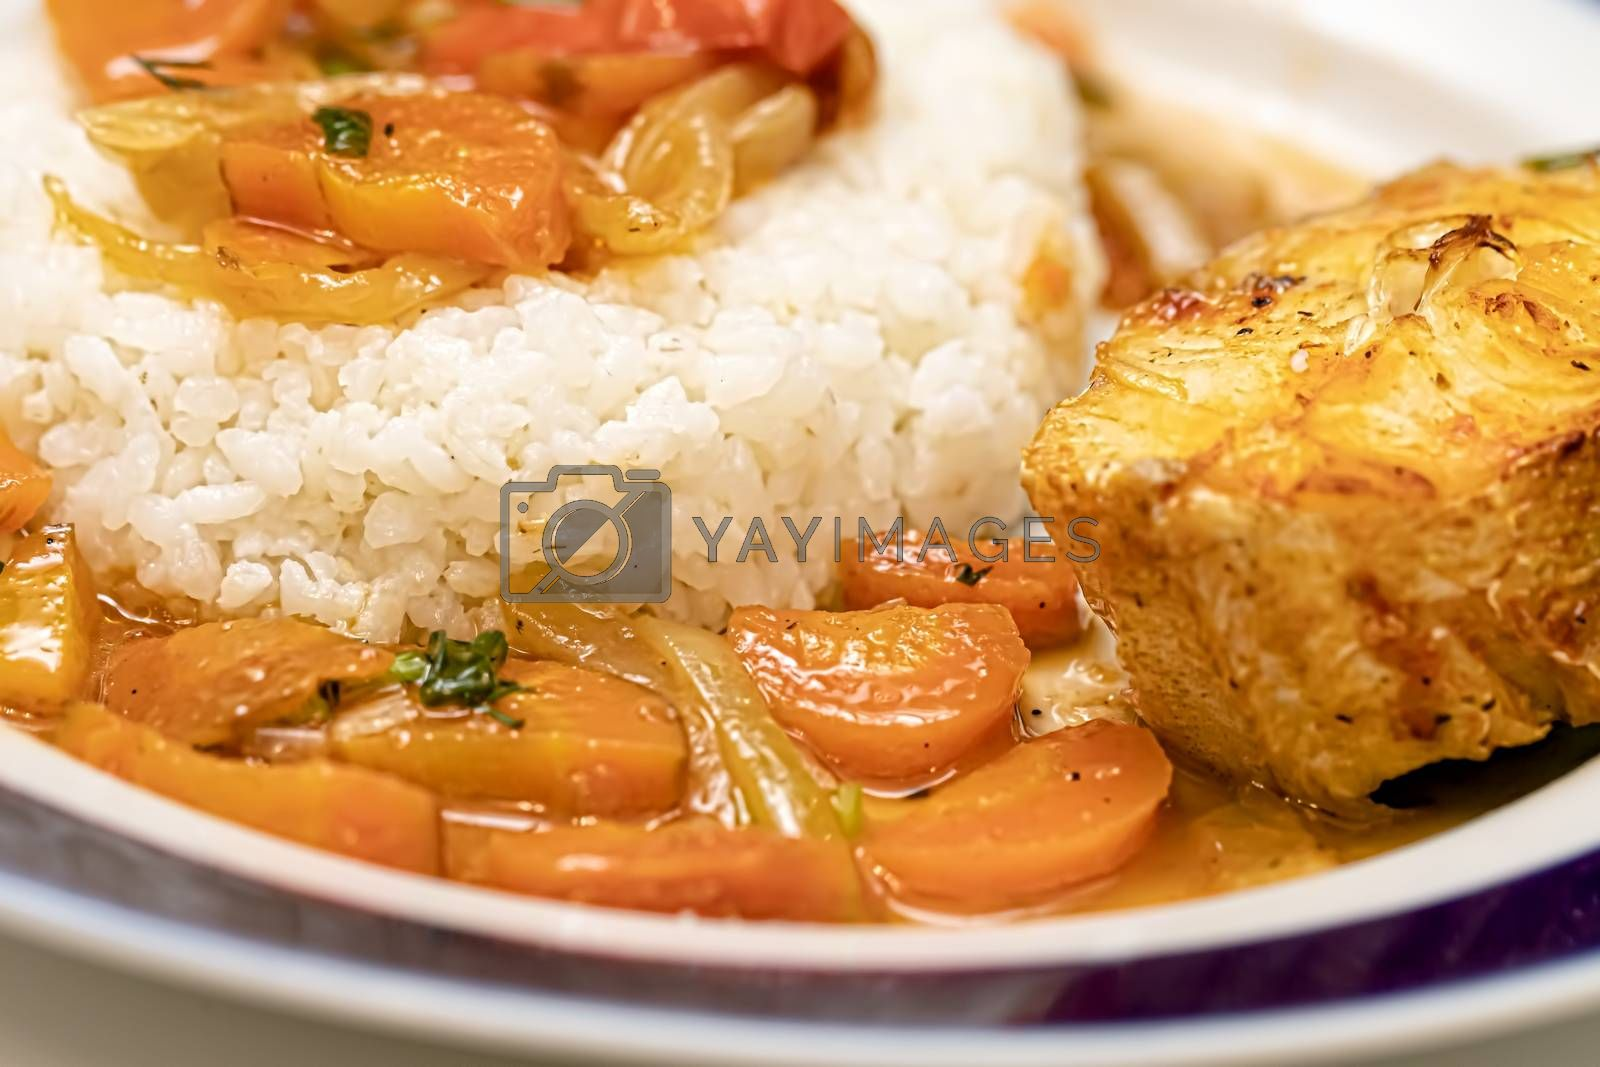 Fish is baked in the oven with onions and carrot slices and served with a side dish of rice. Flexitarian Diet Concept